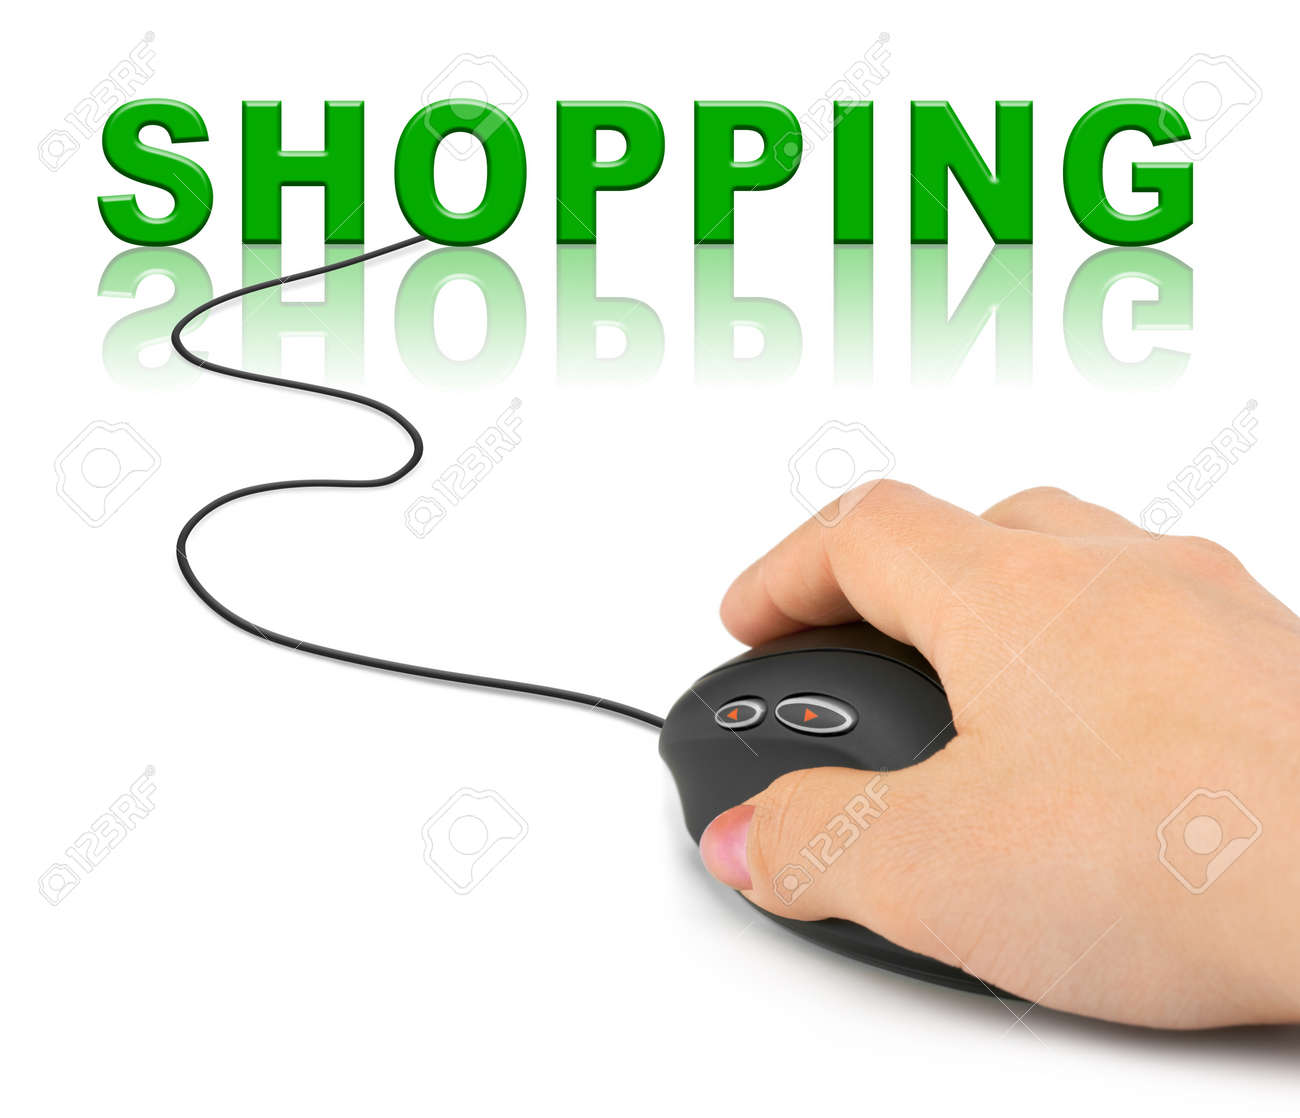 Hand with computer mouse and word Shopping - internet concept Stock Photo - 8804993